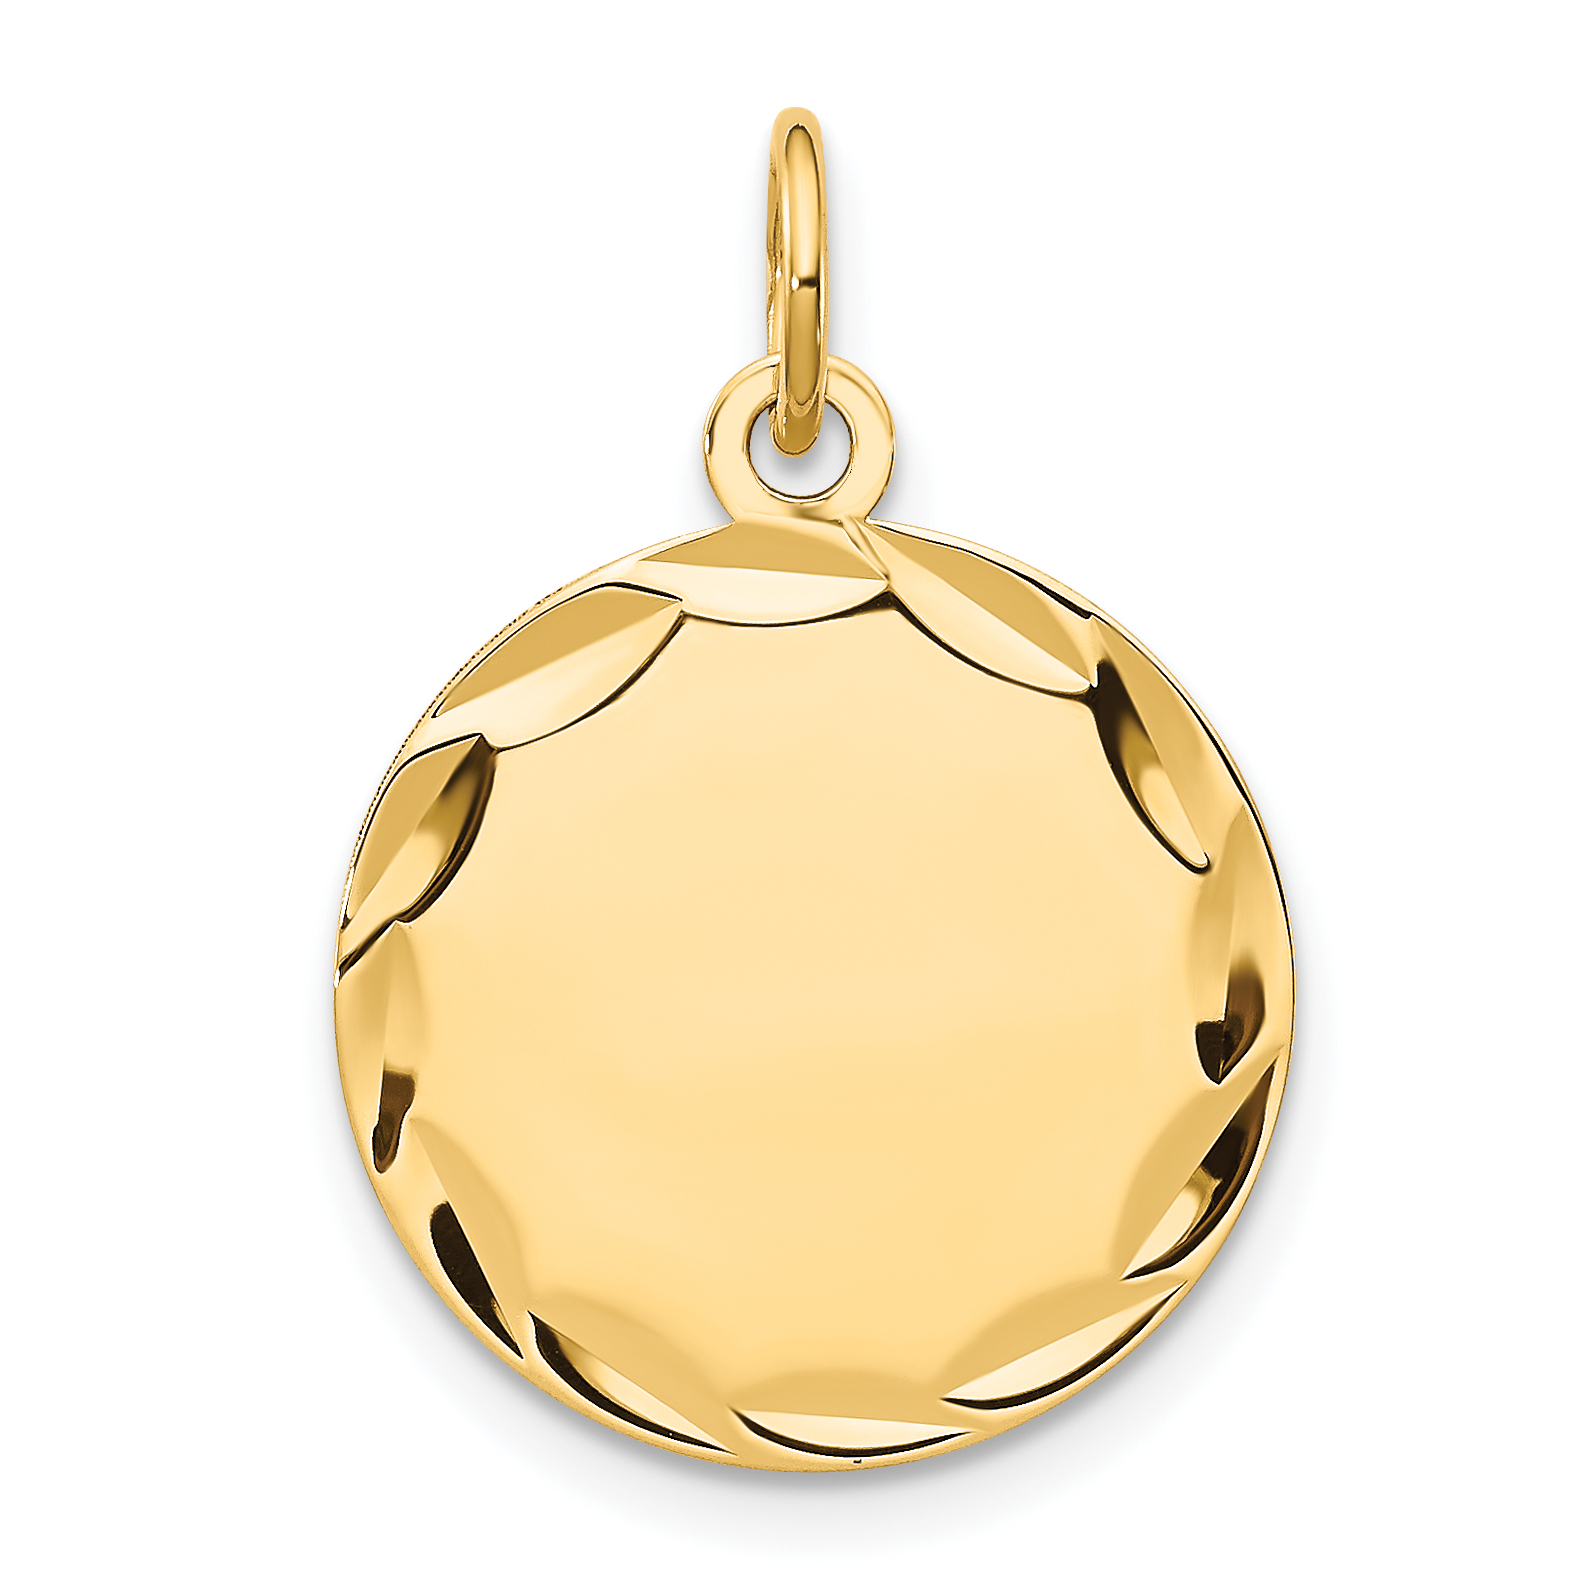 14k Yellow Gold Etched .027 Gauge Engravable Round Disc Pendant Charm Necklace Fine Jewelry Gifts For Women For Her - image 2 de 2